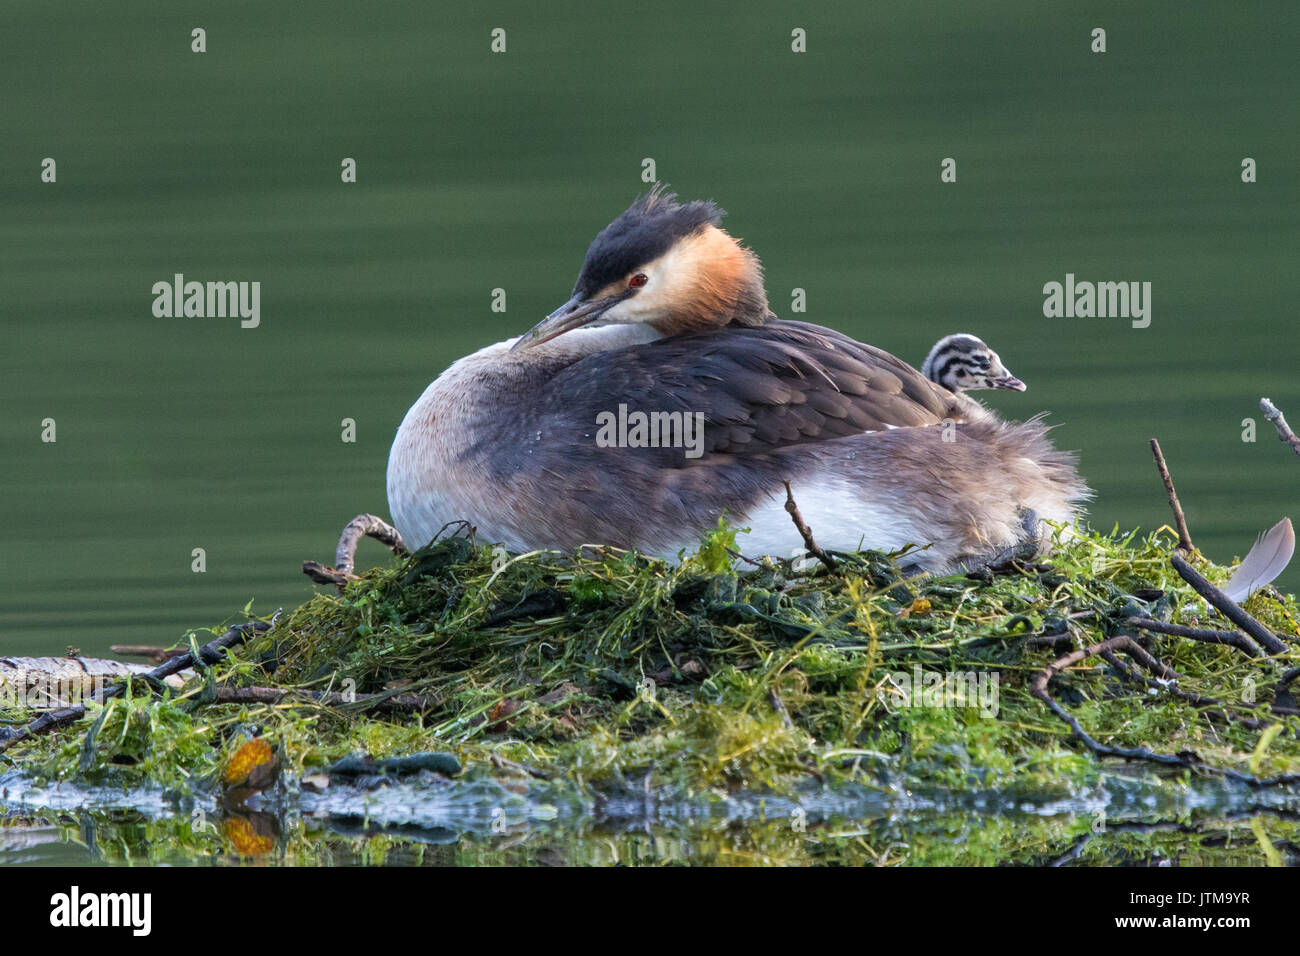 4-day old Great Crested Grebe (Podiceps cristatus) chick resting on its mother's back while she incubates the remaining unhatched eggs - Stock Image